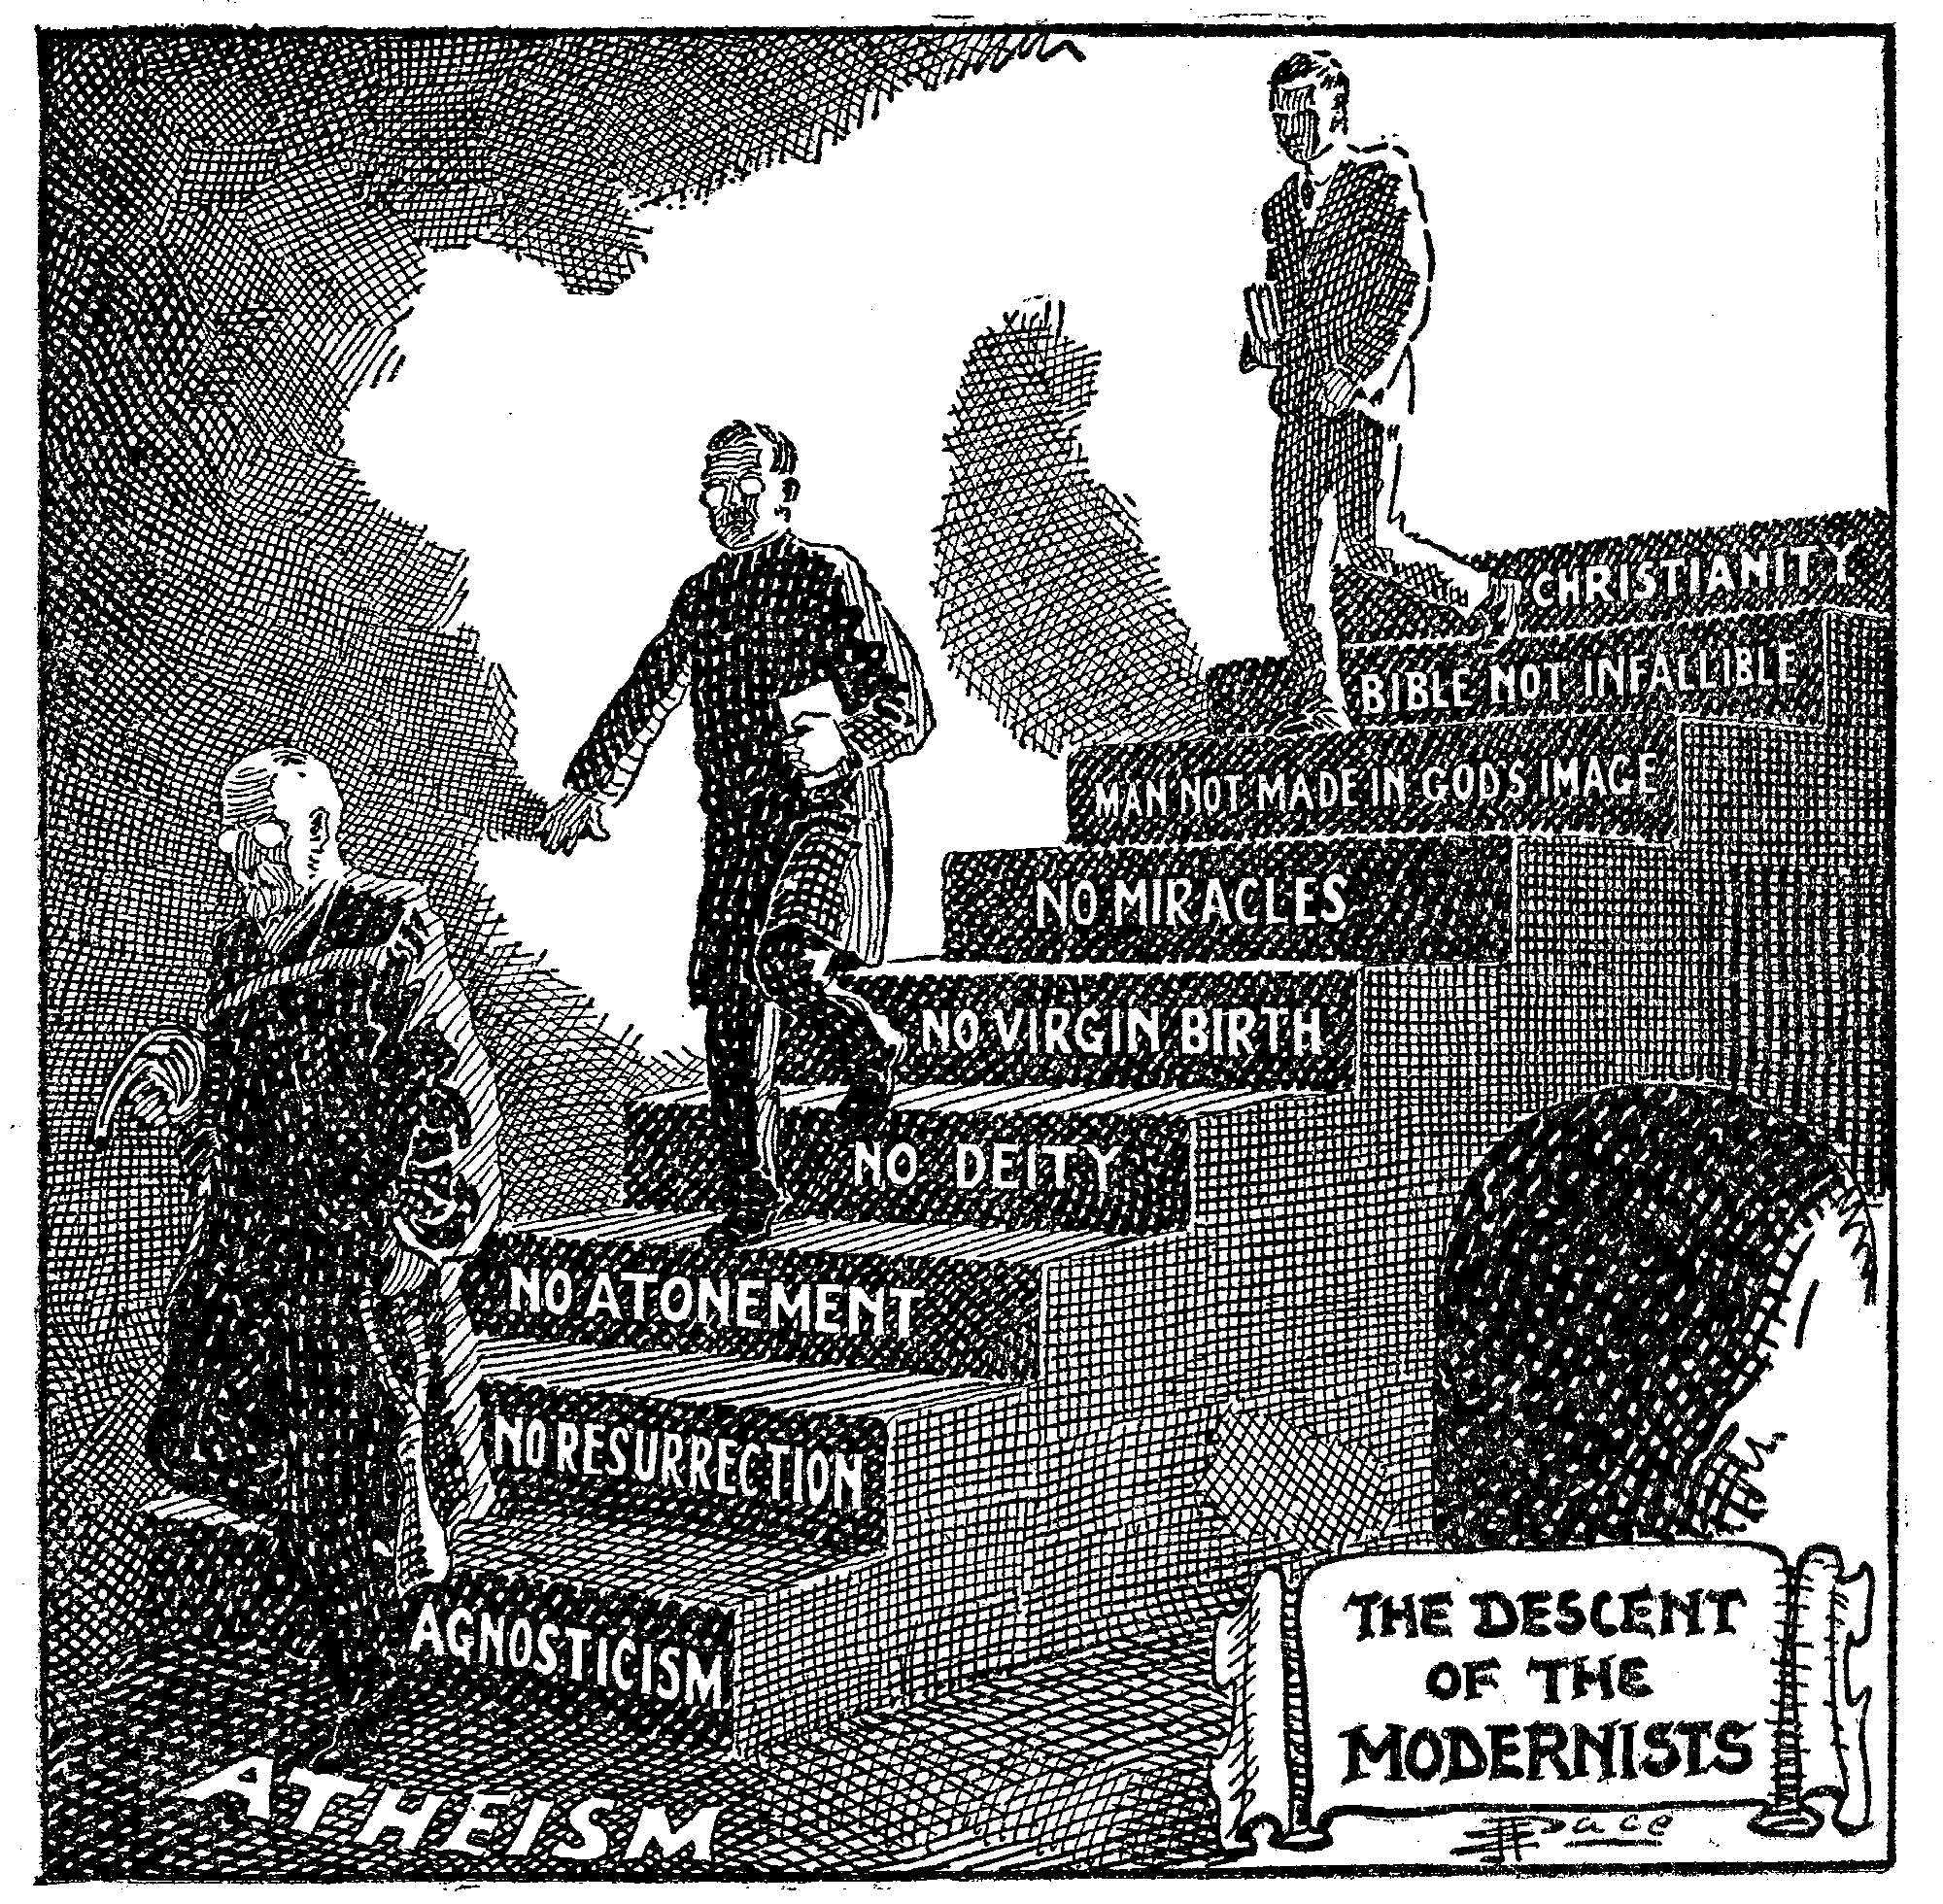 Descent_of_the_Modernists,_E._J._Pace,_Christian_Cartoons,_1922.png